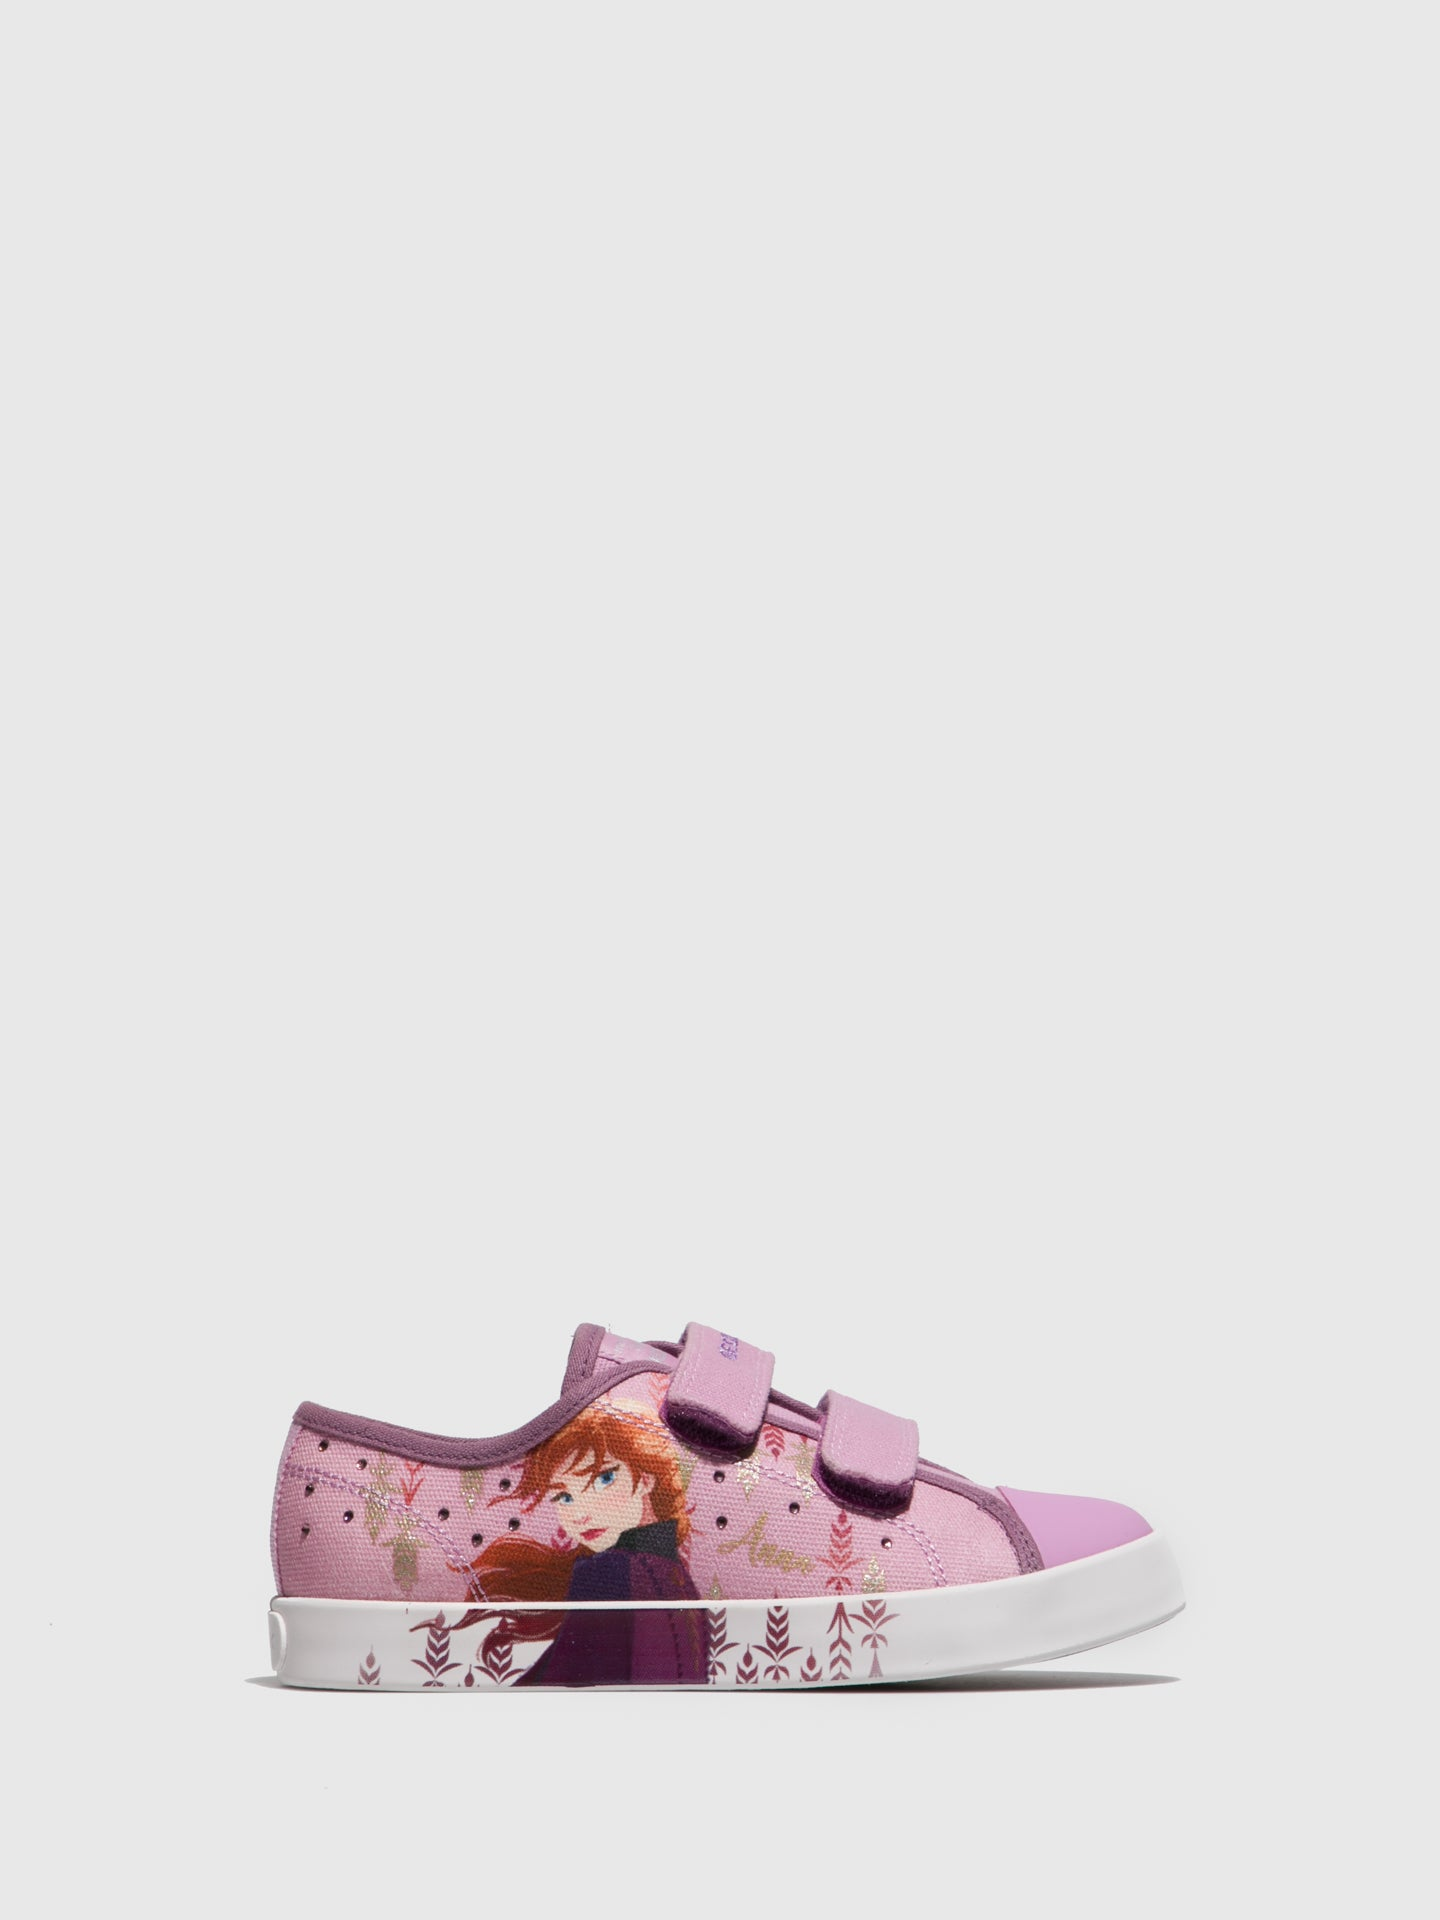 Geox Pink Velcro Trainers